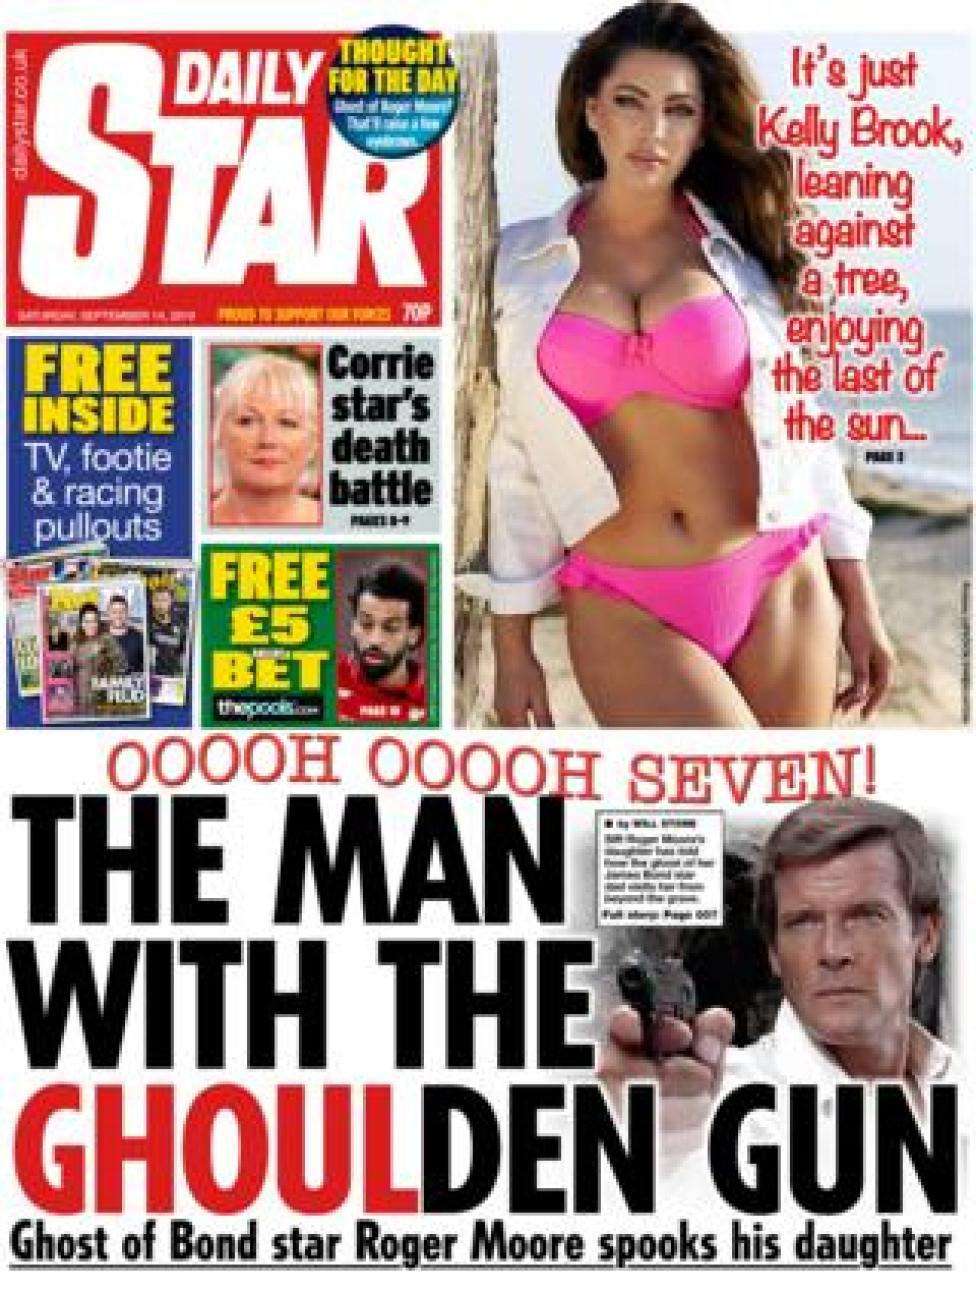 The front page of the Daily Star on 14 September 2019